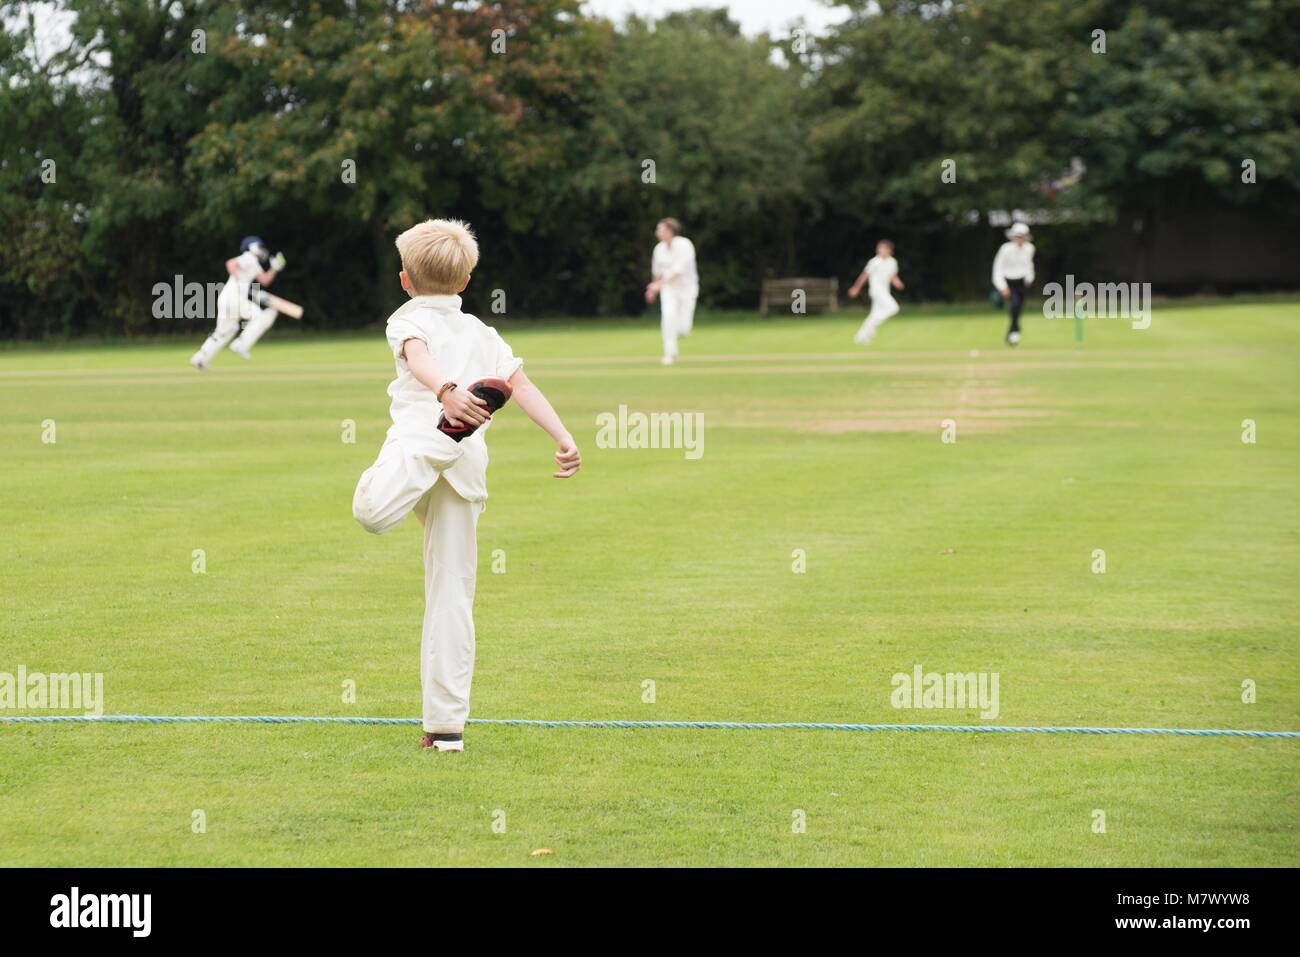 school youth player warming up for village cricket game in the UK in summer - Stock Image